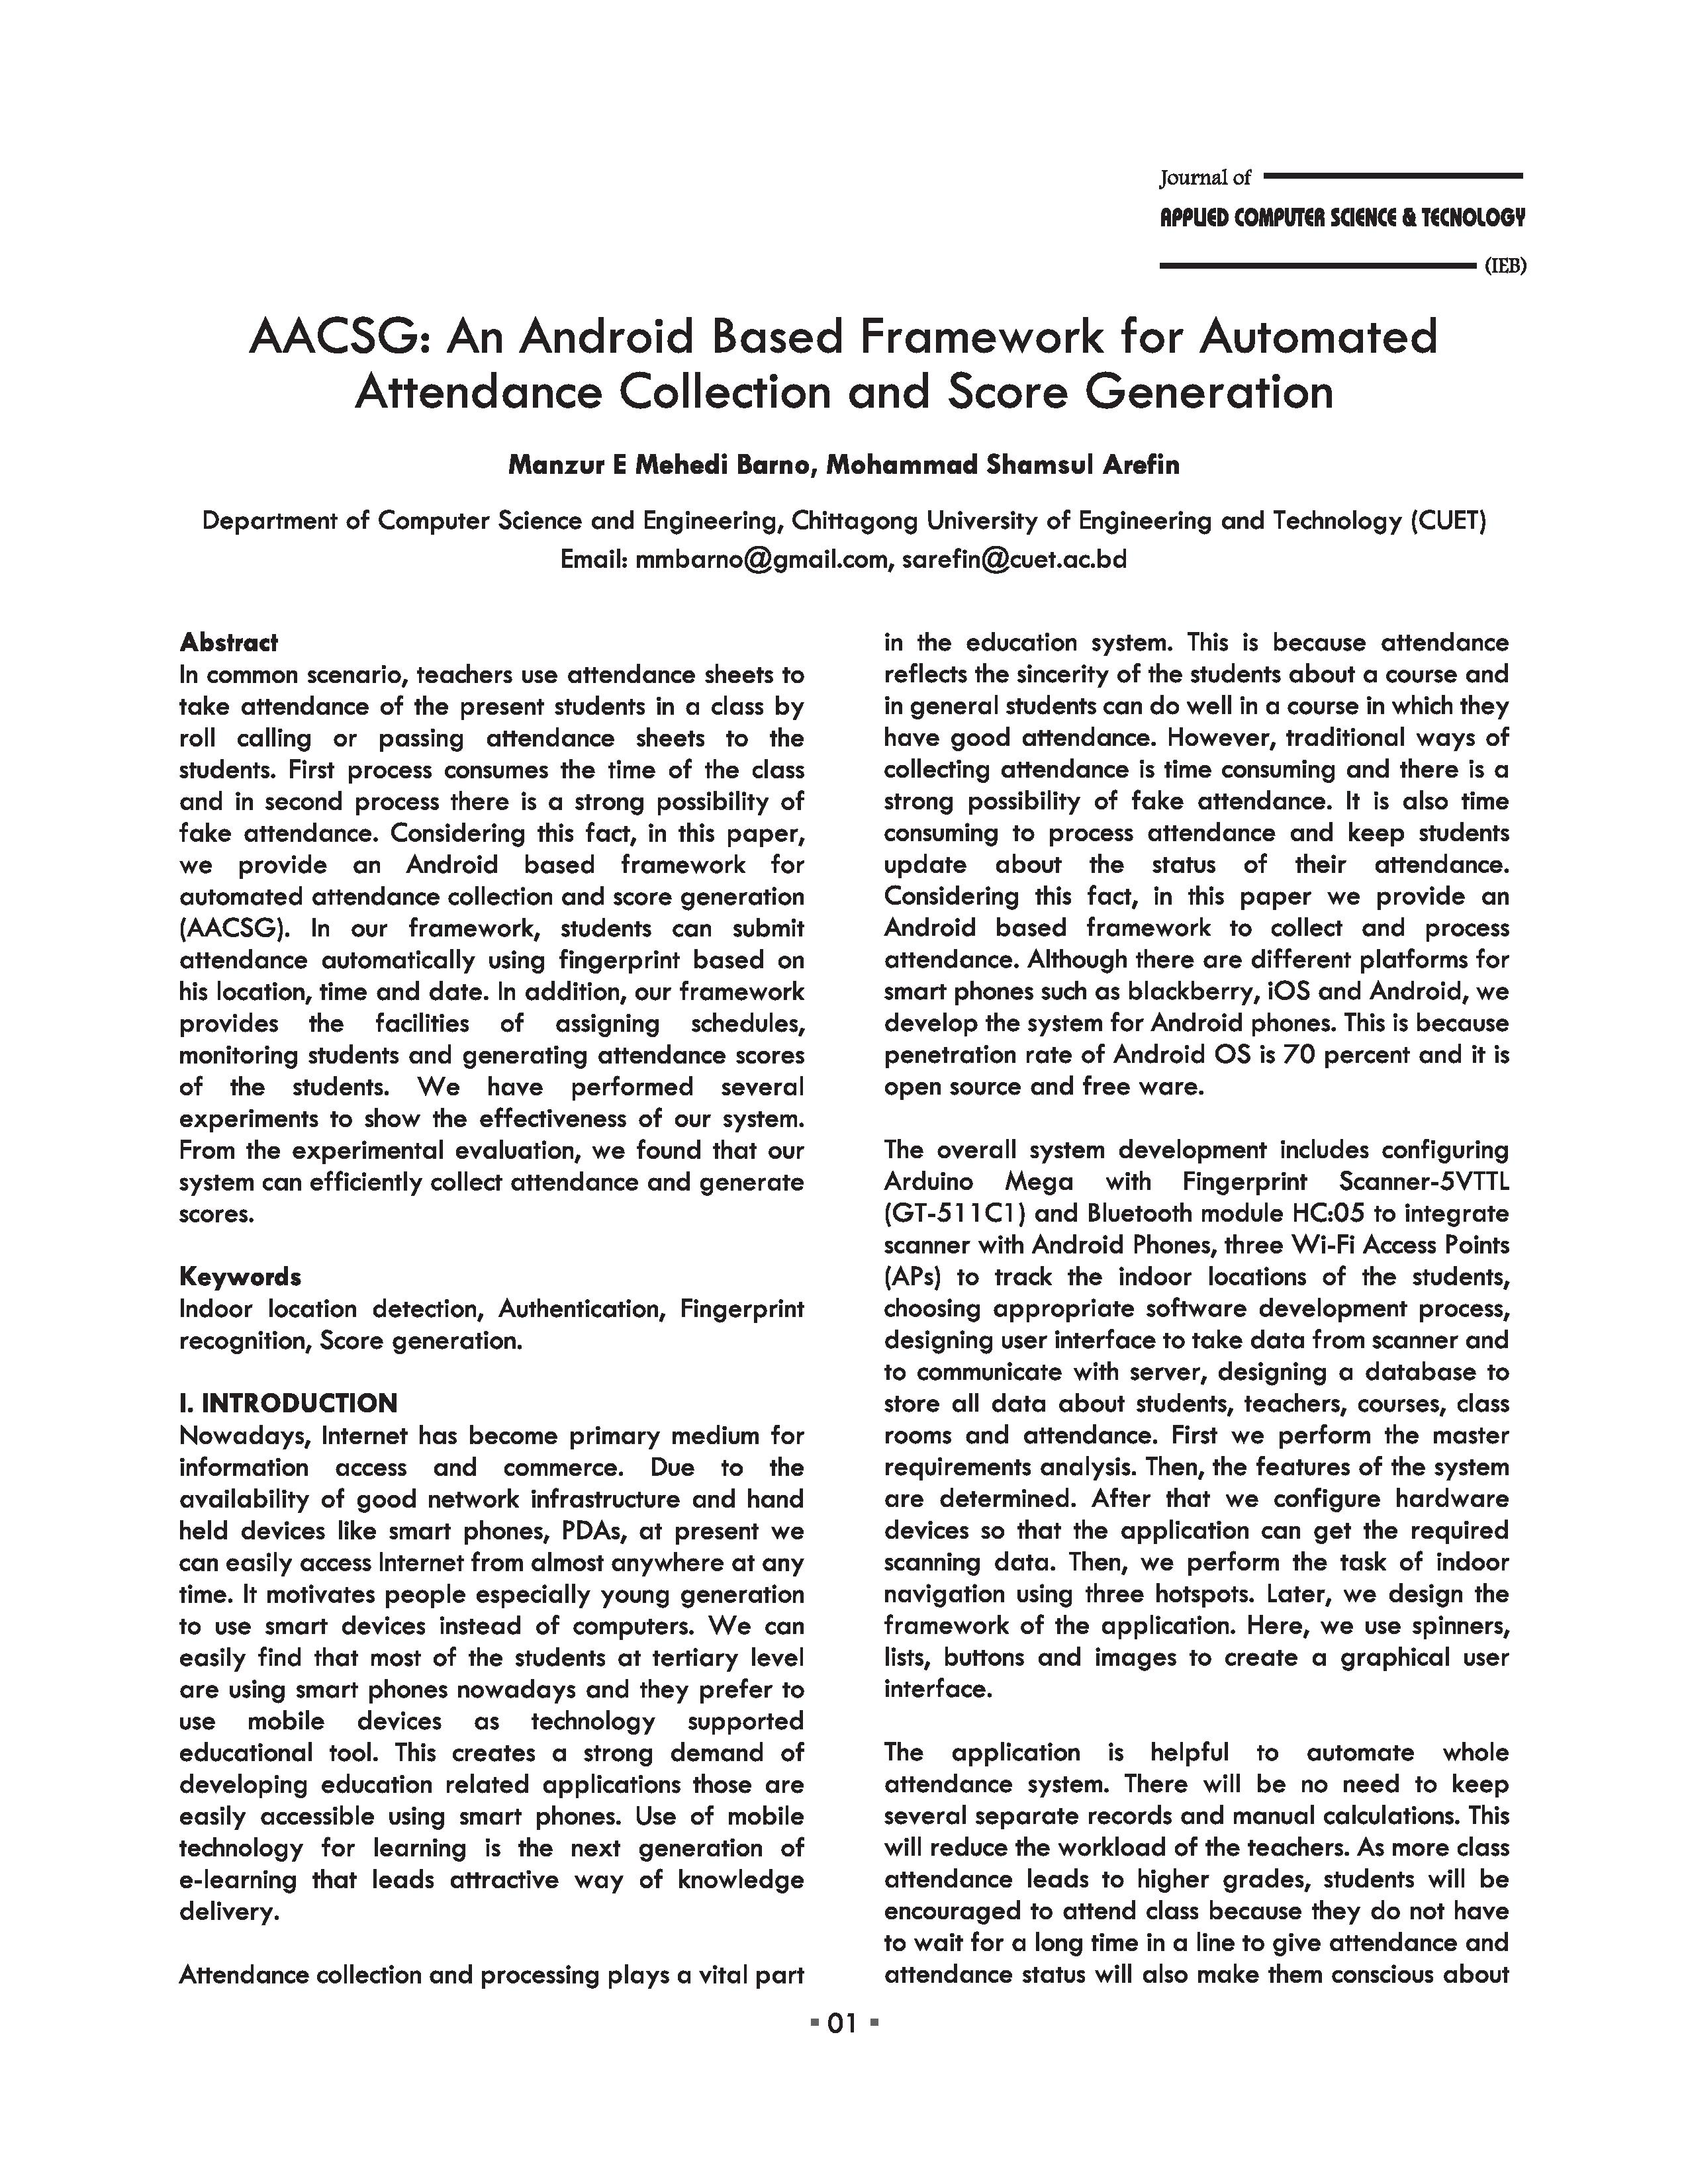 AACSG: An Android Based Framework for Automated